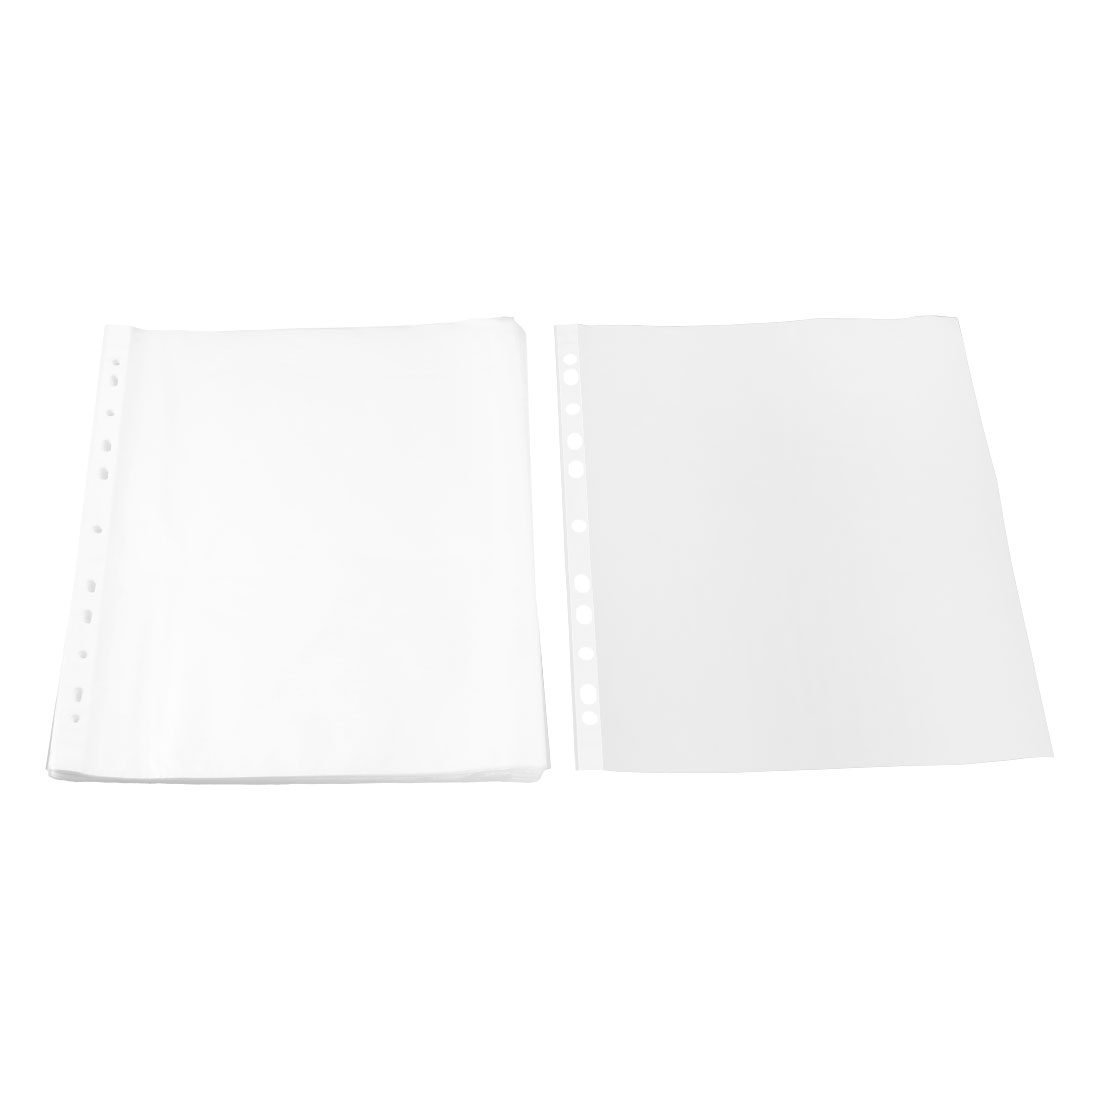 School Plastic Square Shaped File A4 Paper Storage Sheet Protector Clear 0.02cm Thickness 100pcs